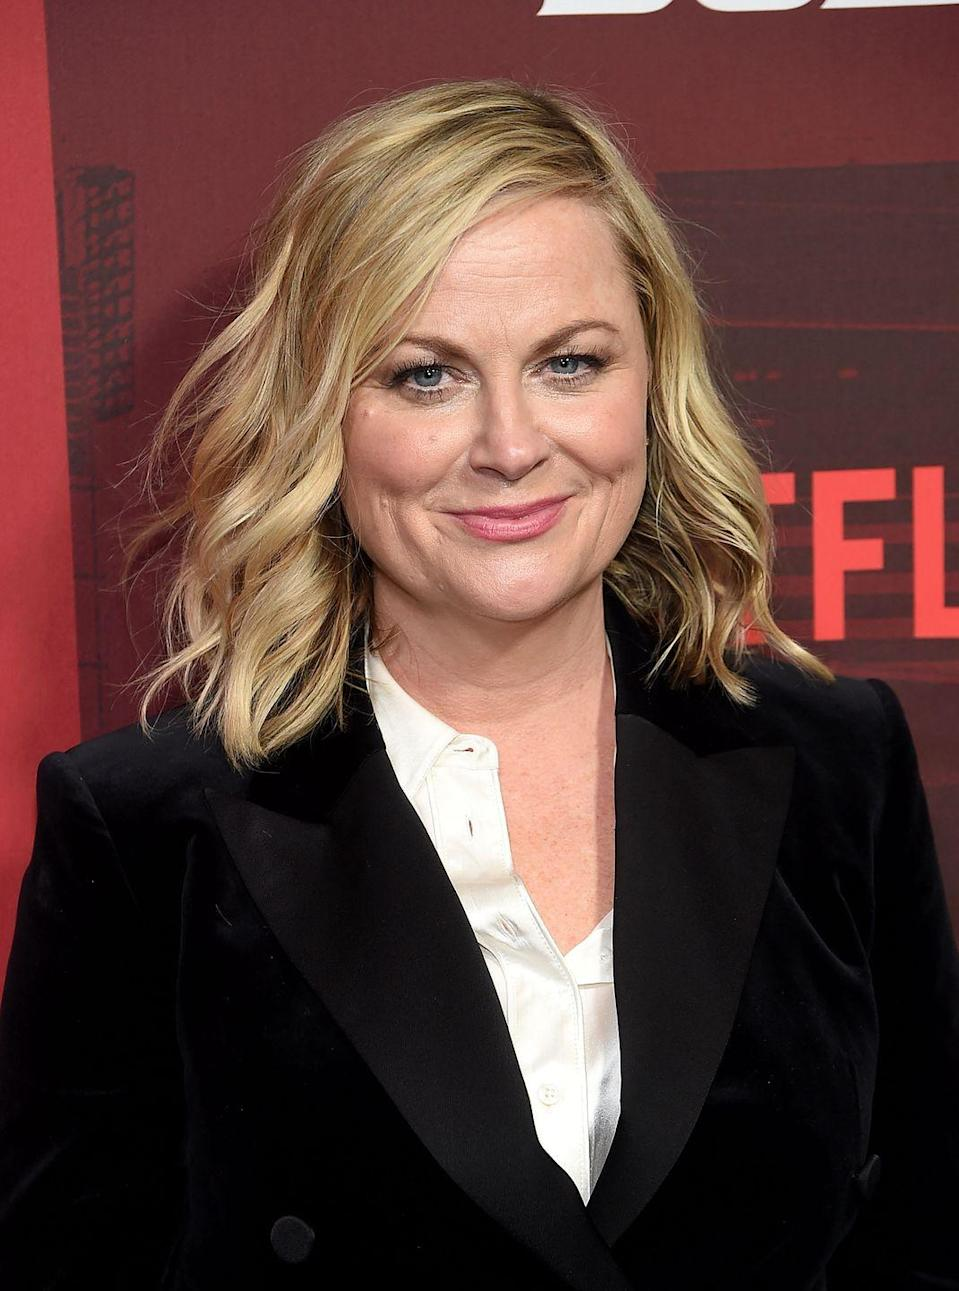 "<p>Funny woman Amy Poehler wrote a piece for <em><a href=""https://www.newyorker.com/magazine/2013/10/14/take-your-licks"" rel=""nofollow noopener"" target=""_blank"" data-ylk=""slk:the New Yorker"" class=""link rapid-noclick-resp"">the New Yorker</a></em> about how she spent the summer before college working at Chadwick's, a local ice cream parlor that specialized in sundaes and steak fries.</p><p>""Hard and physical, the job consisted of stacking and wiping and scooping and lifting,"" she said. ""But I soon learned the satisfaction of working at a place that truly closed. I took great joy in watching people stroll in after hours, thinking they could grab a late-night sundae. I would point to the dimmed lights and stacked chairs as proof that we were shut. It was deliciously obvious and final.""</p>"